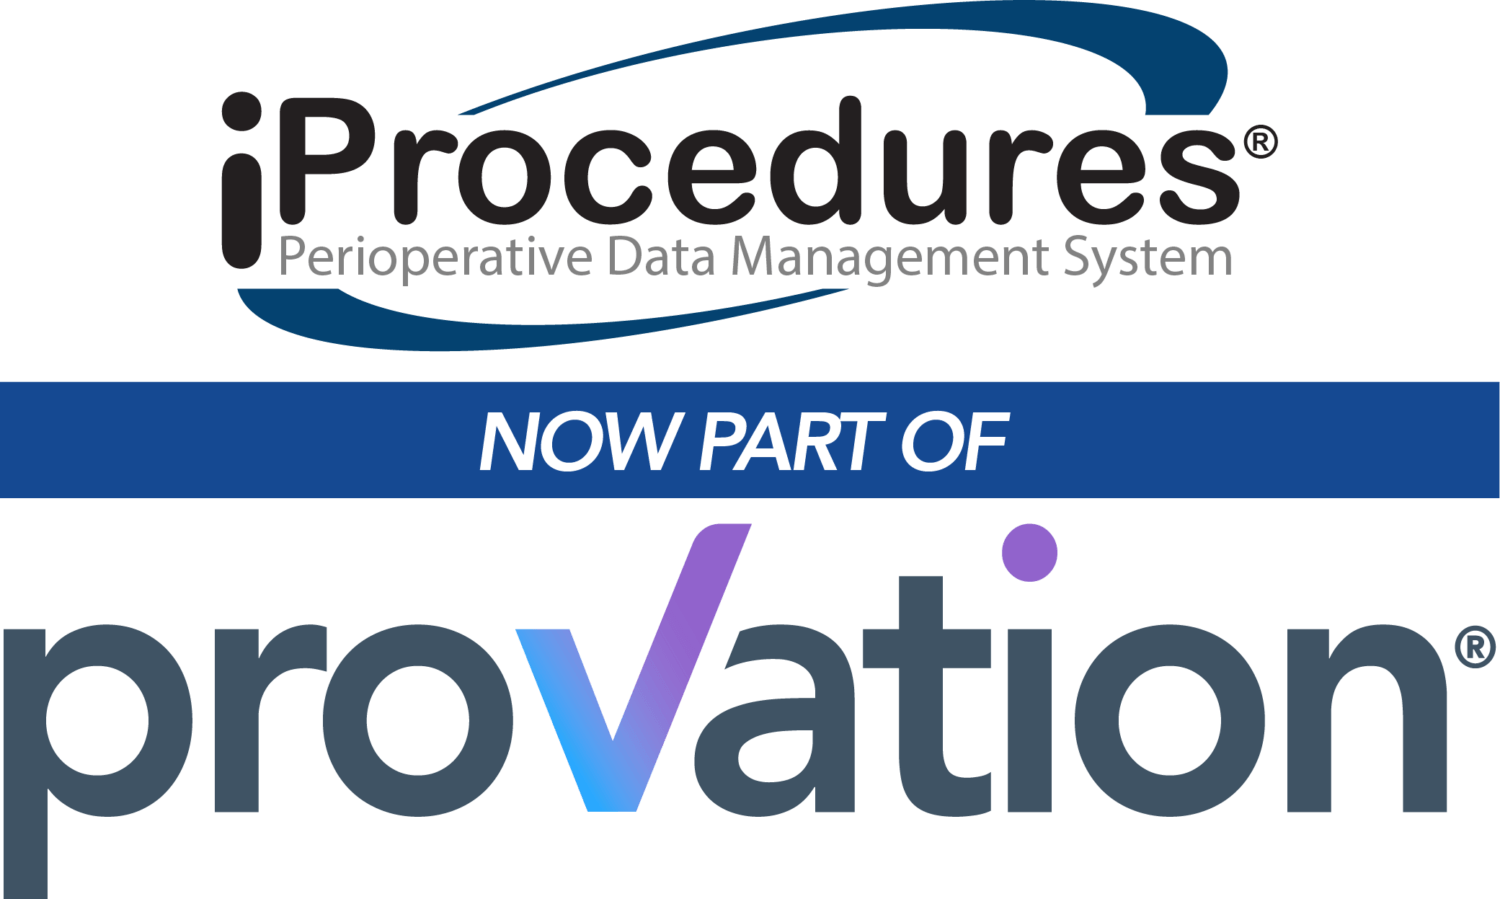 Provation Acquires Perioperative Data Management Platform iProcedures